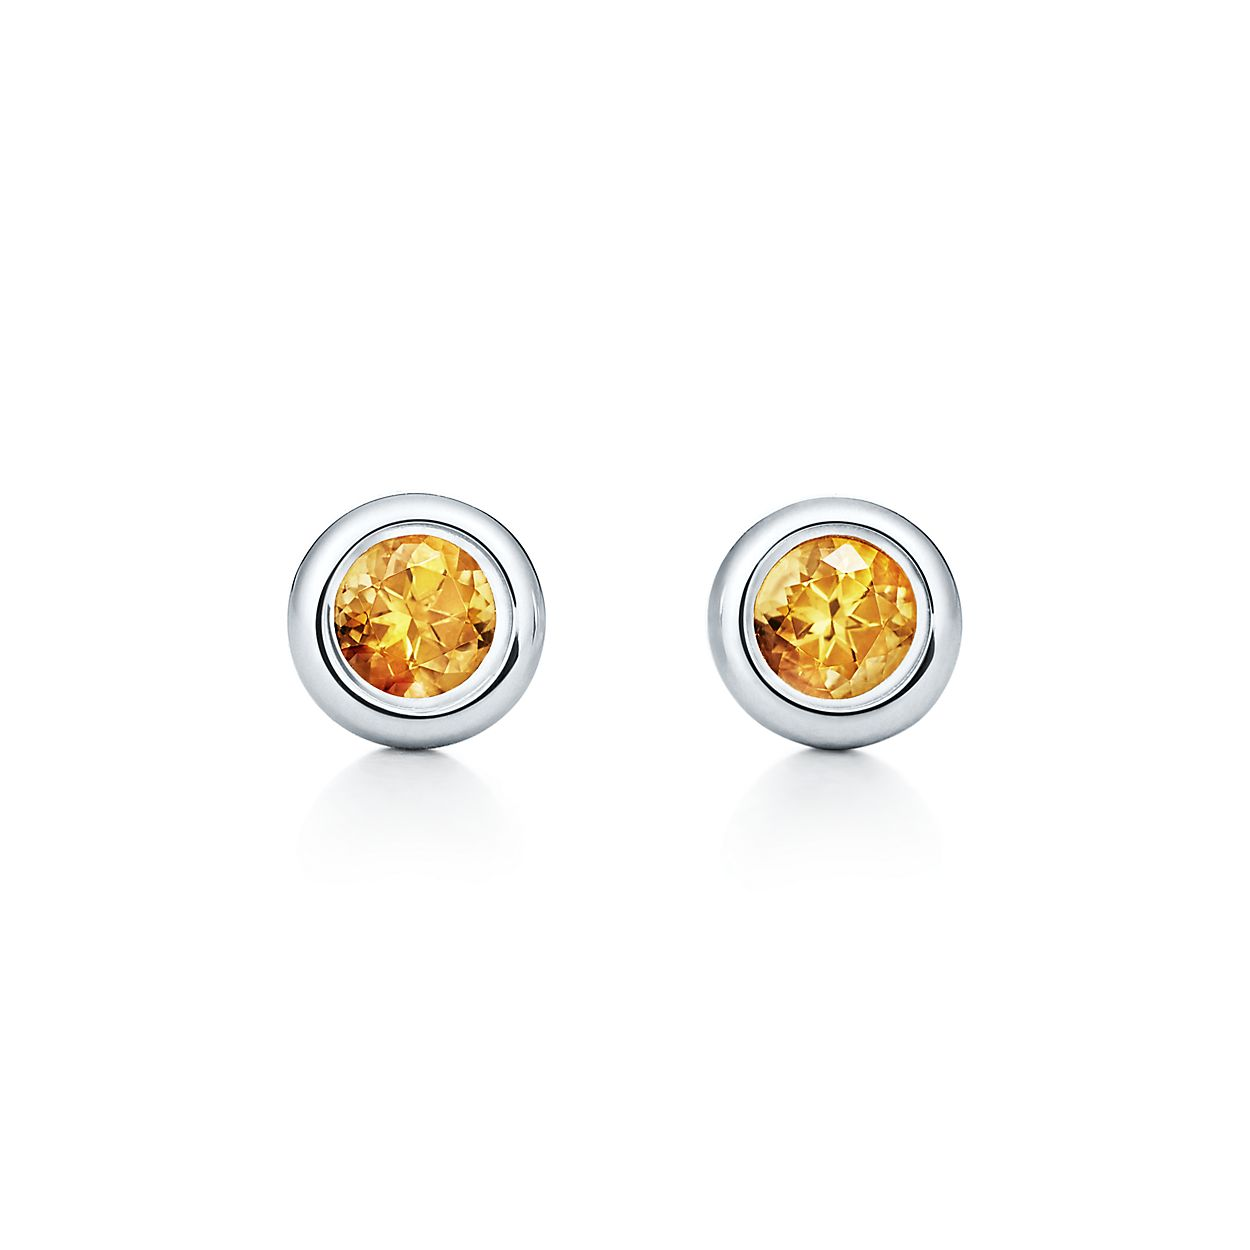 Elsa Peretti Color by the Yard earrings in sterling silver with citrines Tiffany & Co. DpUtXD